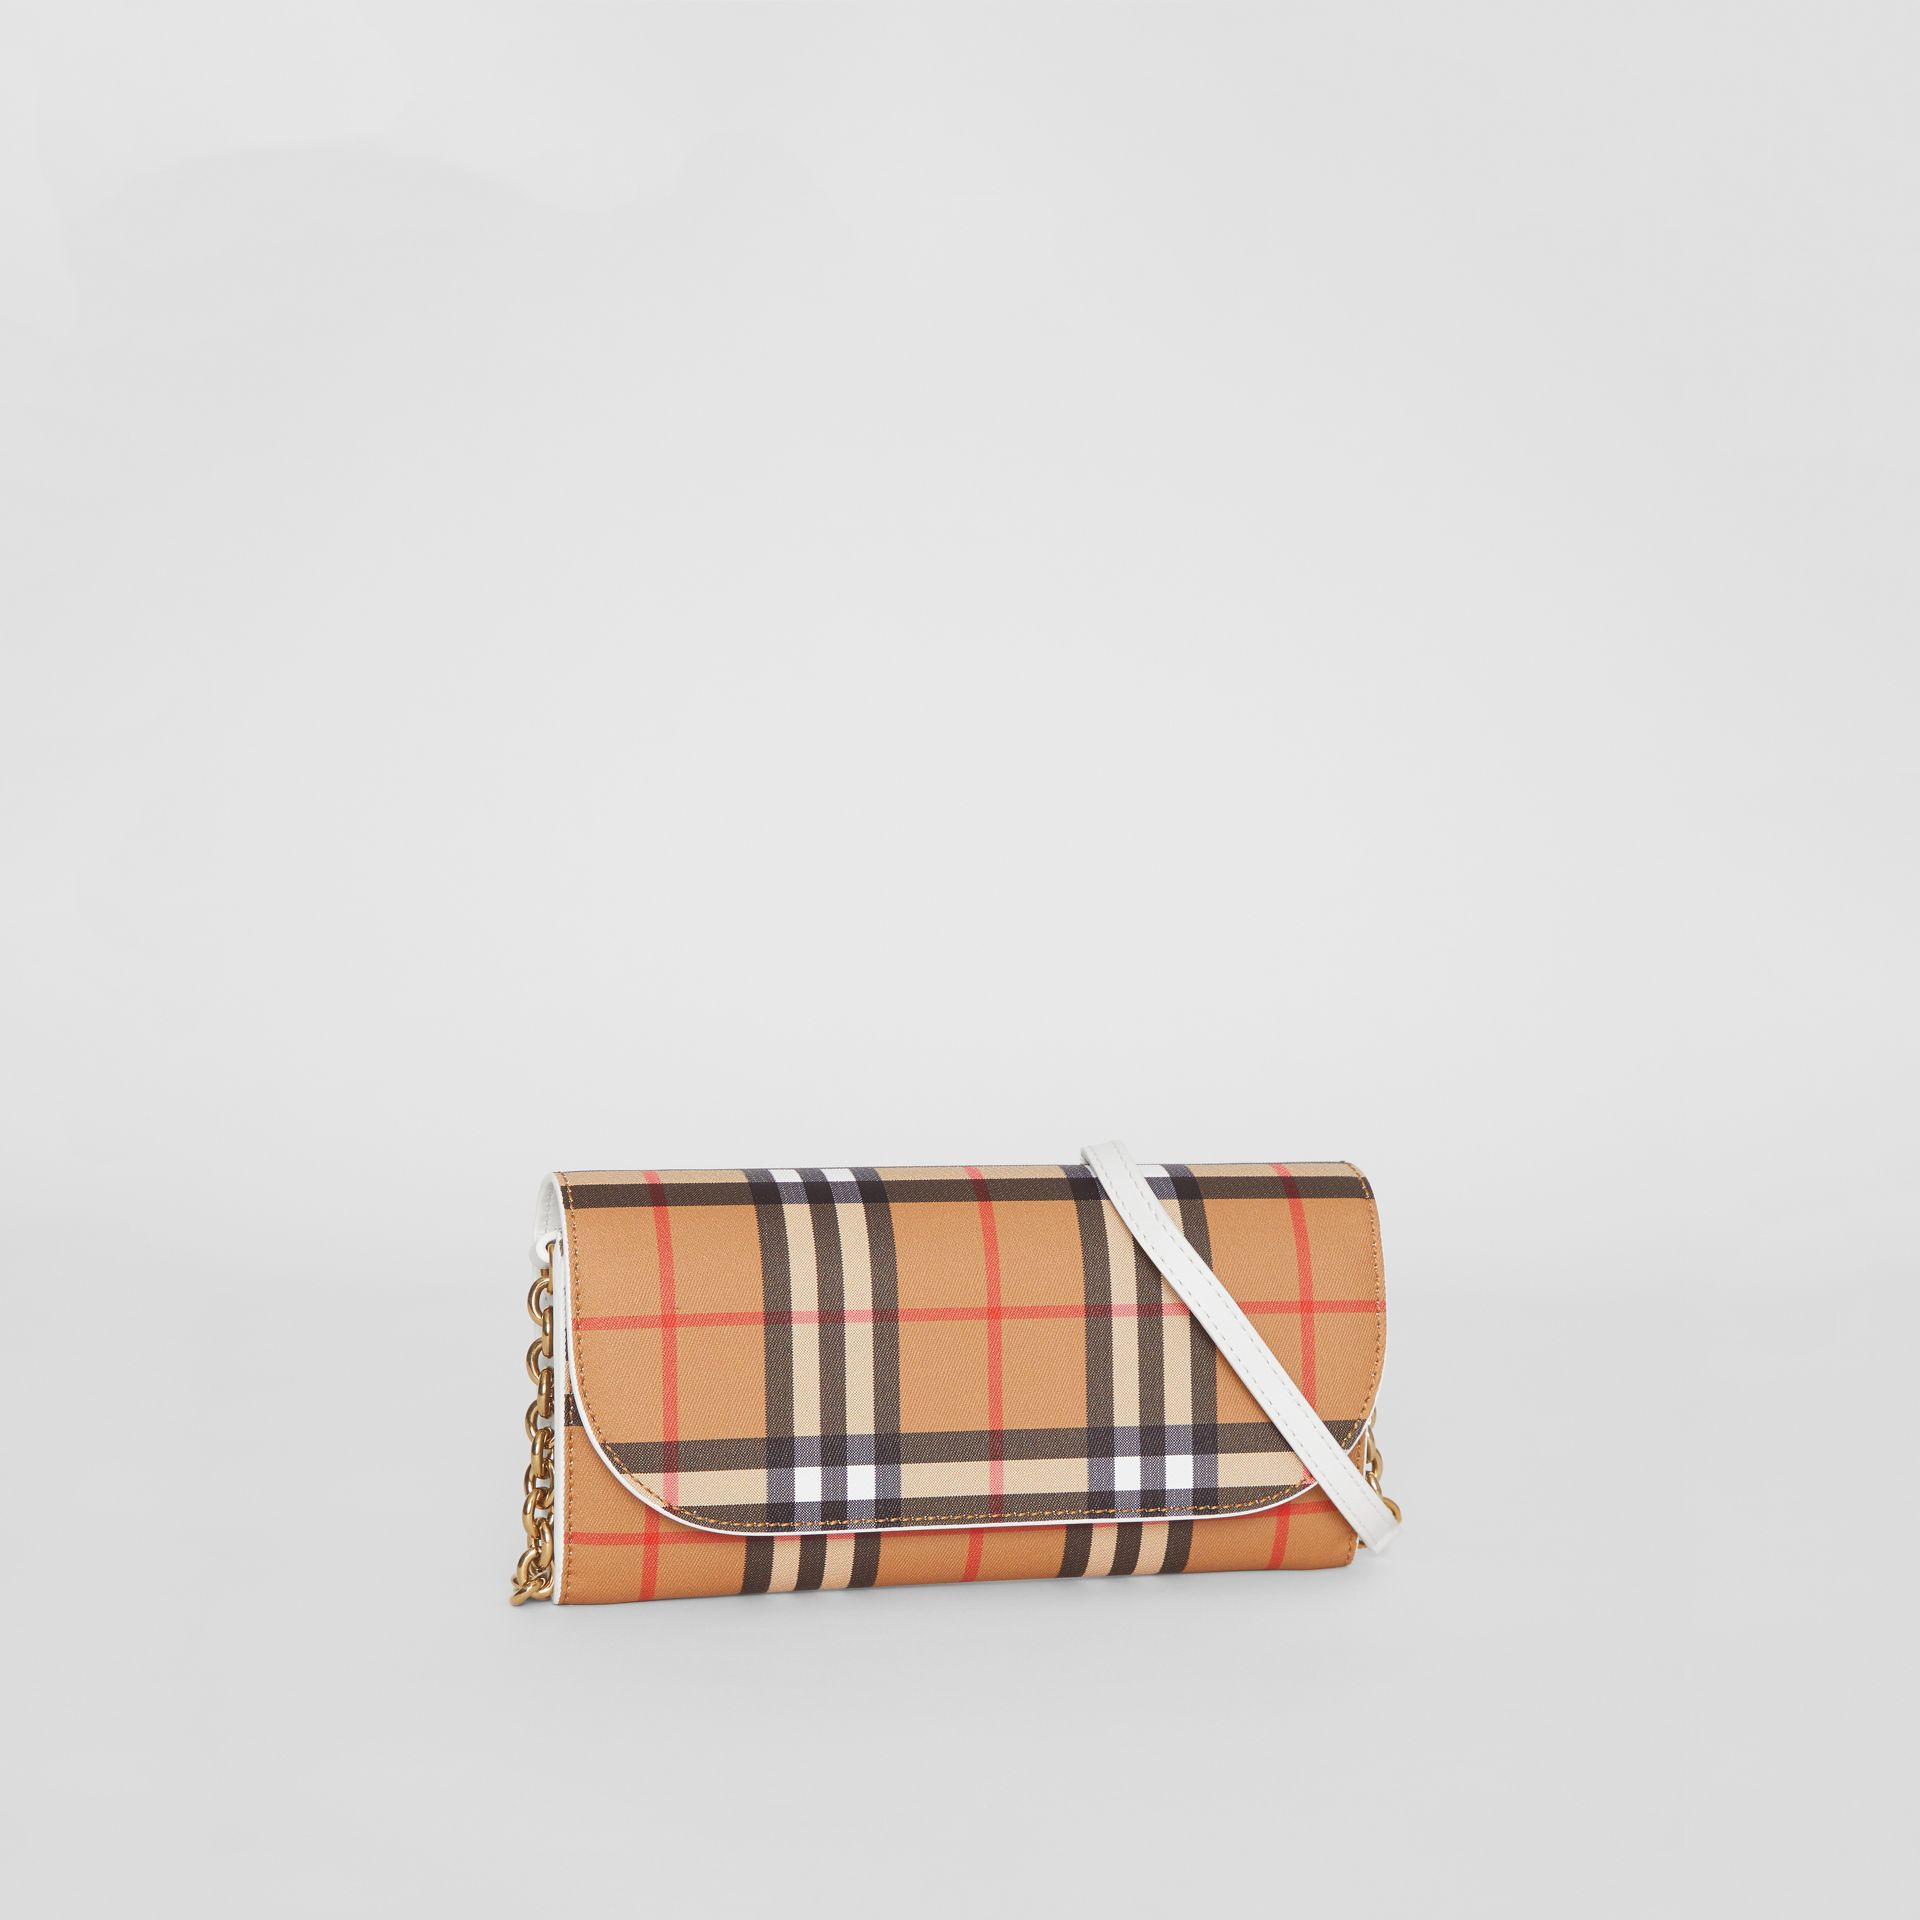 Vintage Check and Leather Wallet with Chain in Chalk White - Women | Burberry Canada - gallery image 6